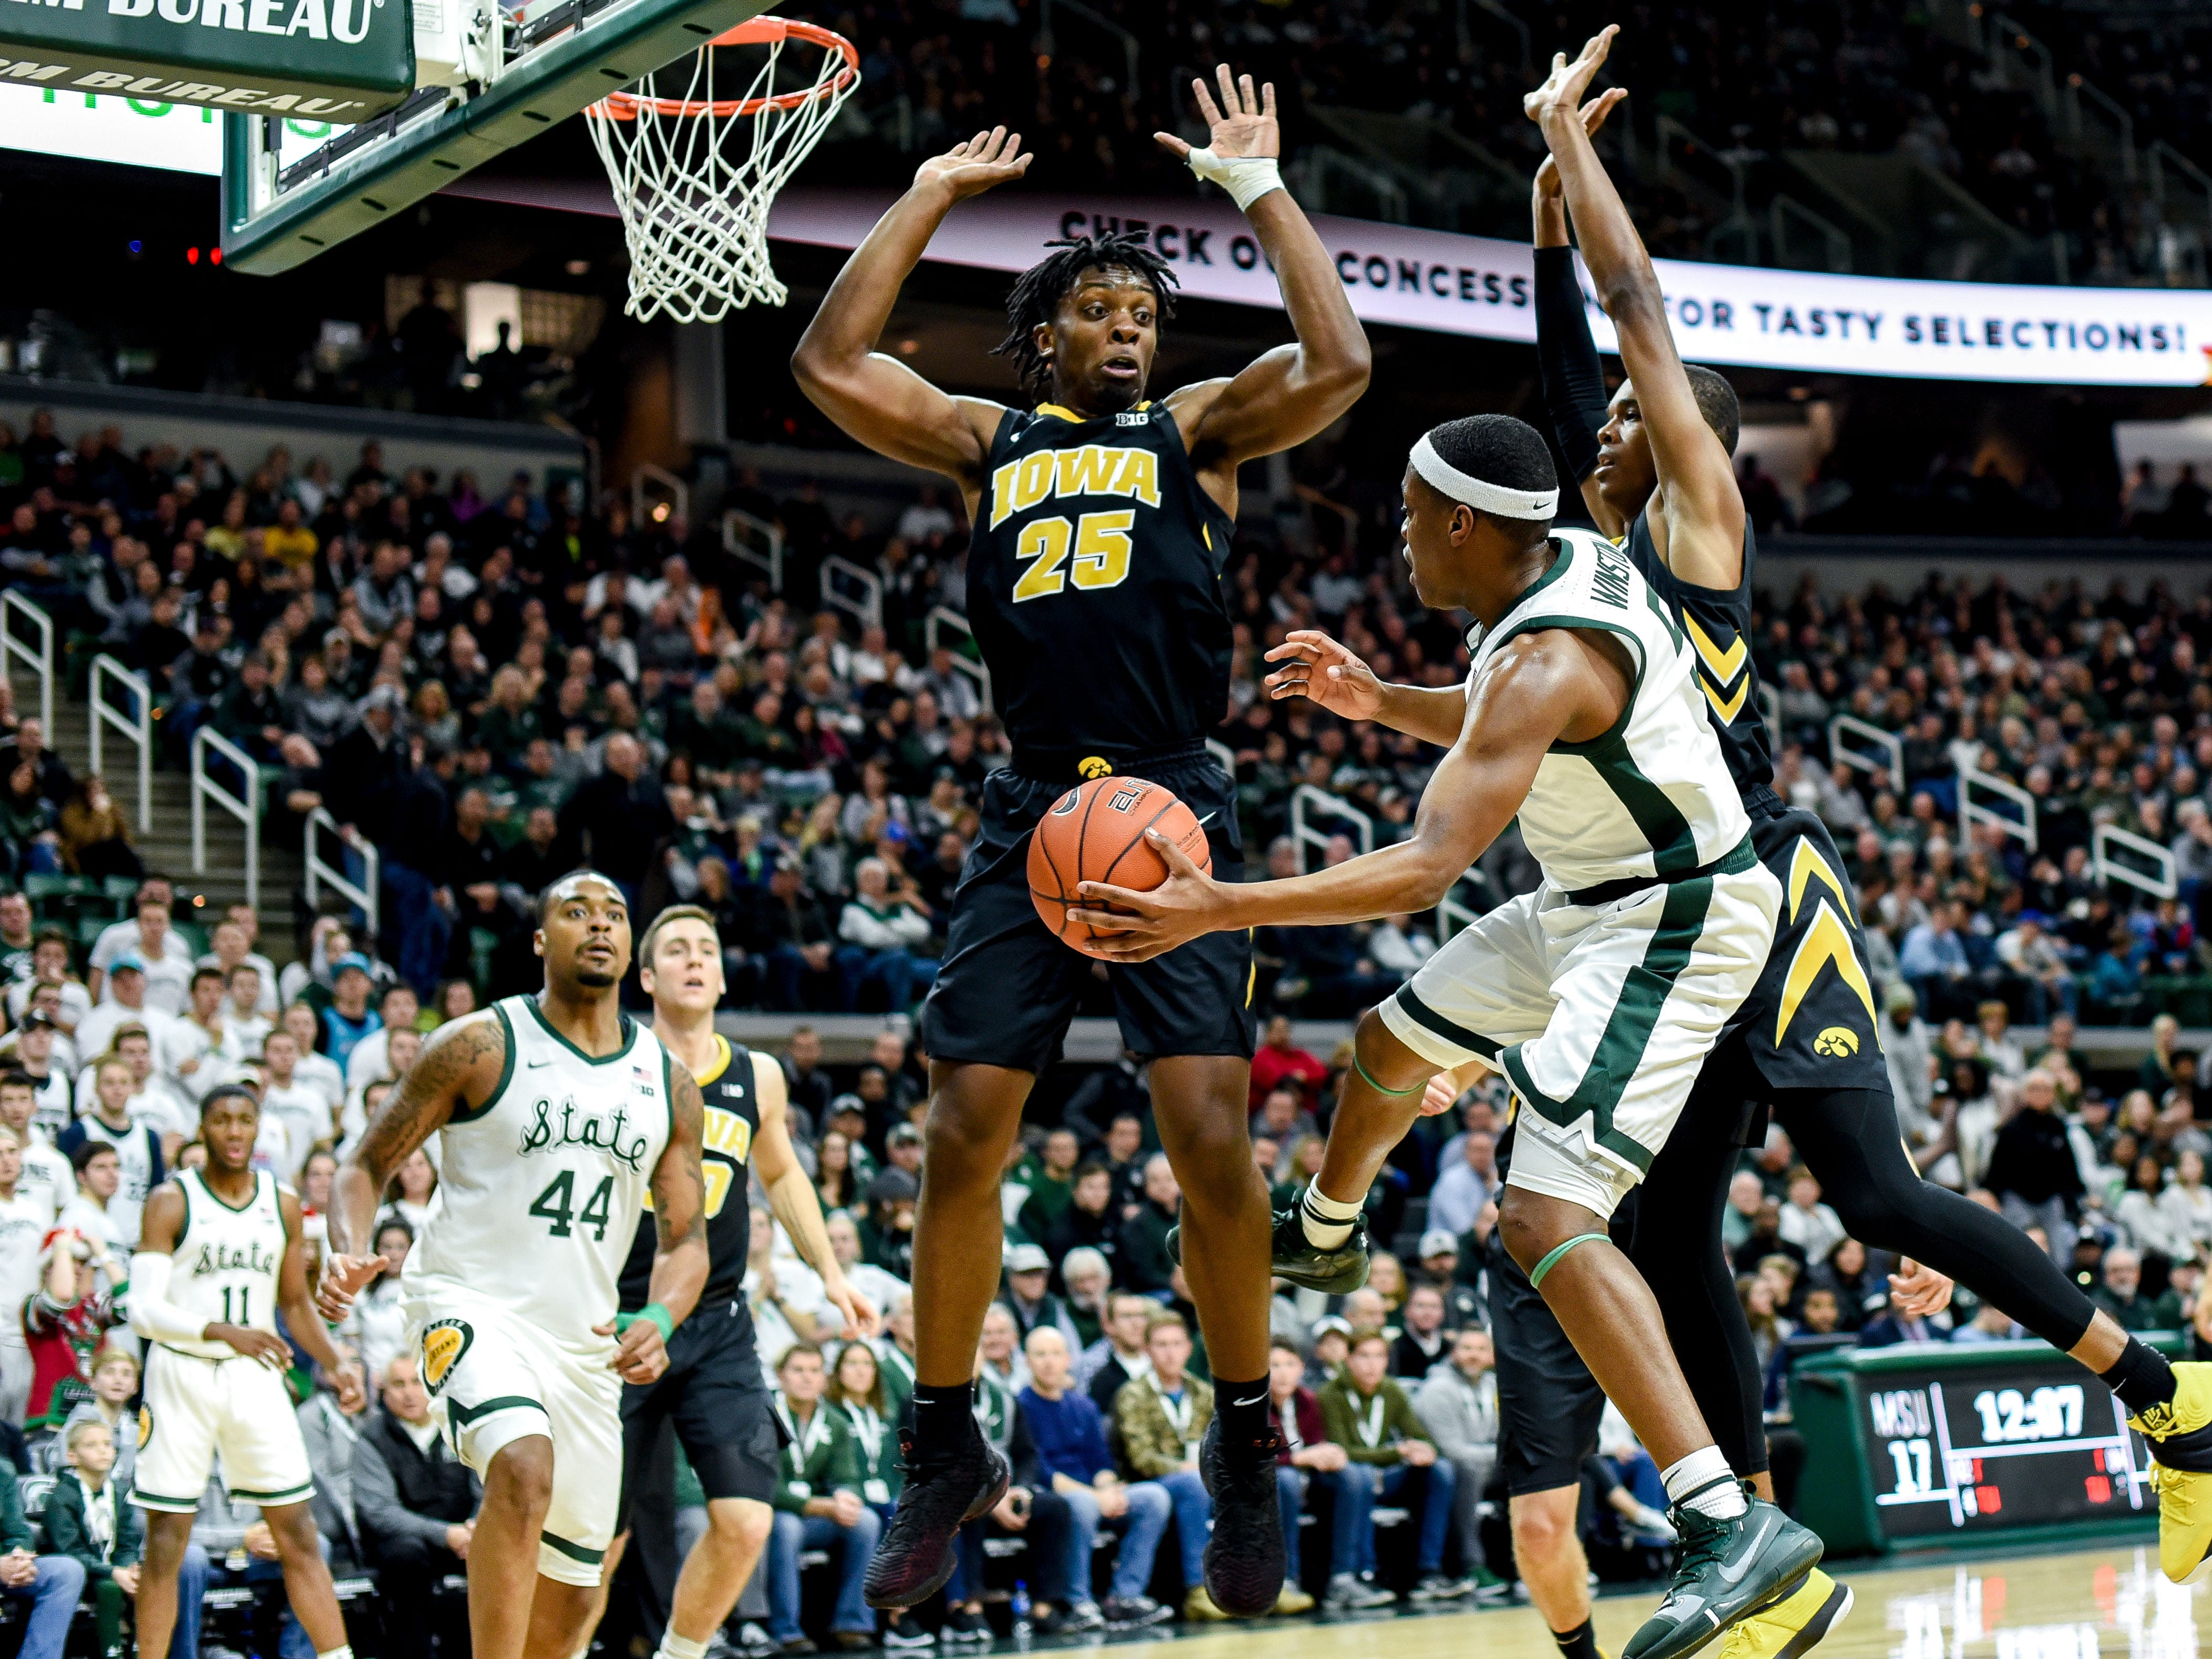 Michigan State's Cassius Winston passes to Nick Ward as Iowa's Tyler Cook, left, and Maishe Dailey defend Dec. 3, 2018, at the Breslin Center in East Lansing.